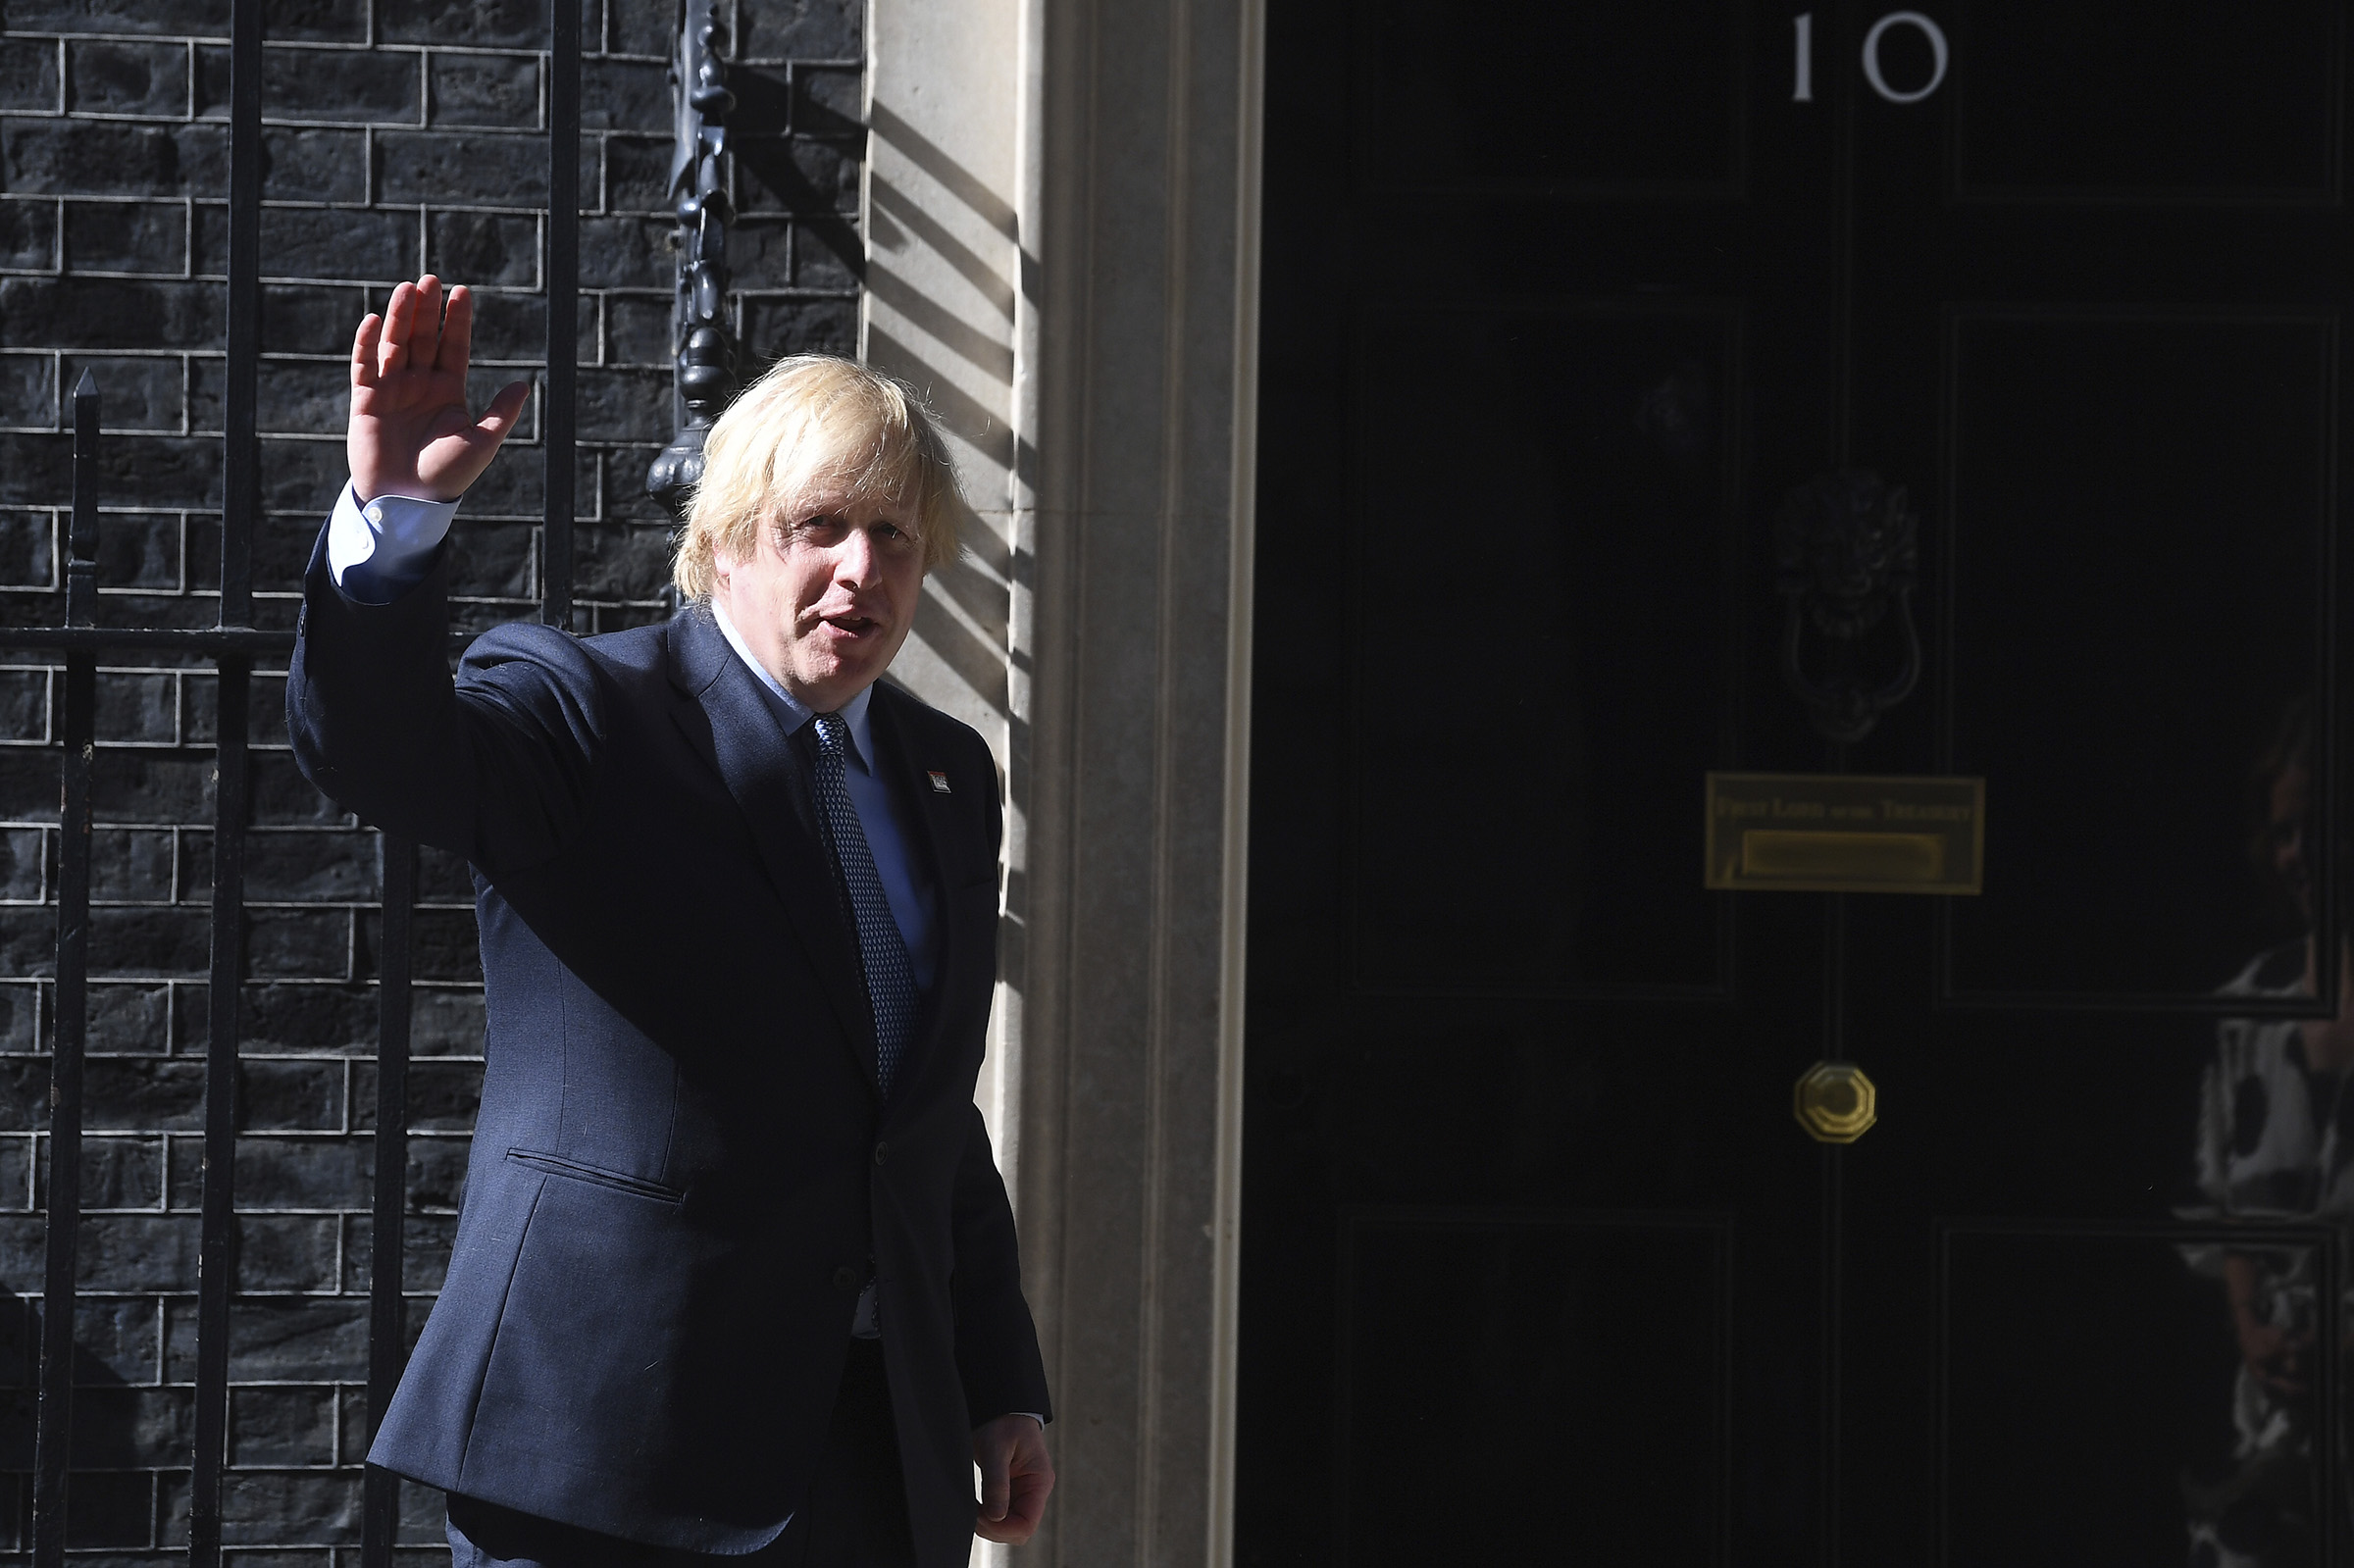 Prime Minister, Boris Johnson joins in the pause for applause to salute the NHS in London on July 5, 2020.